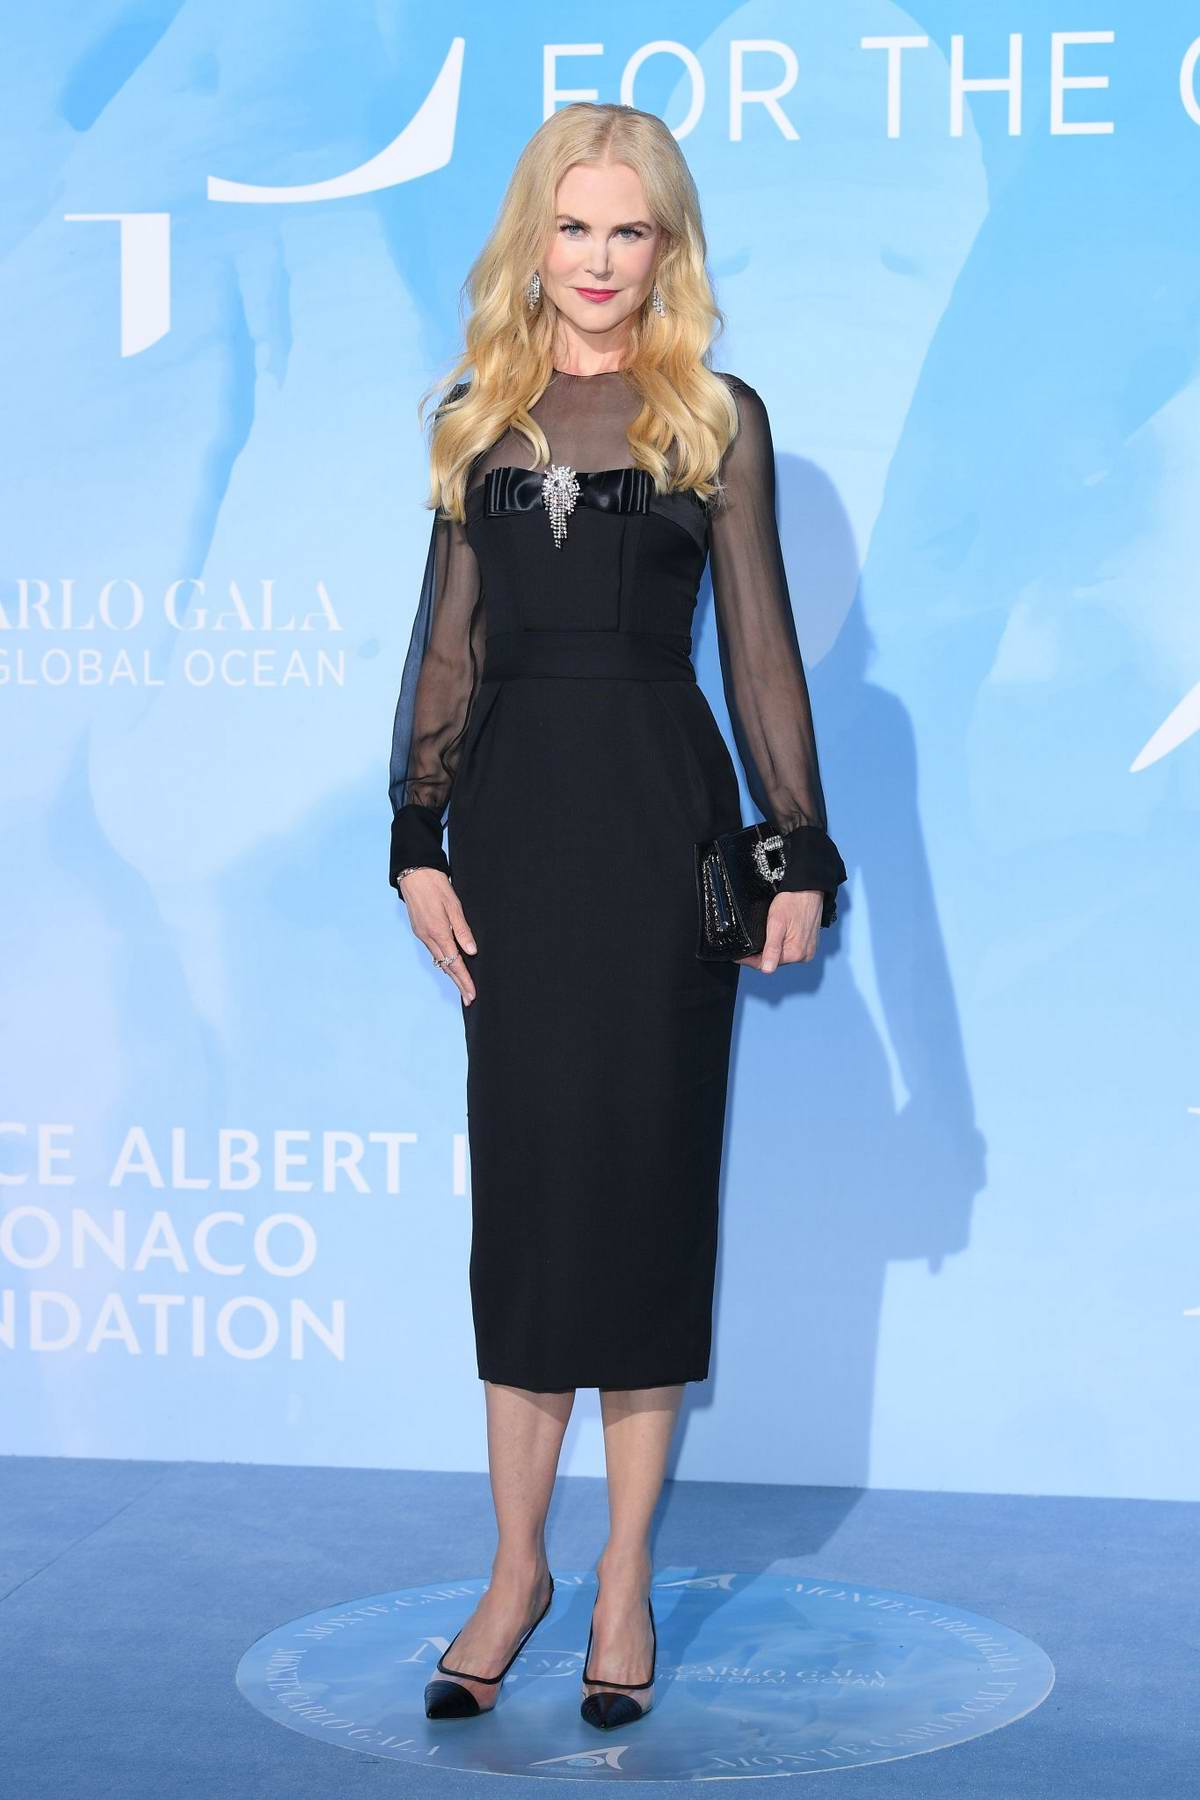 Nicole Kidman attends the Gala for the Global Ocean in Monte Carlo, Monaco